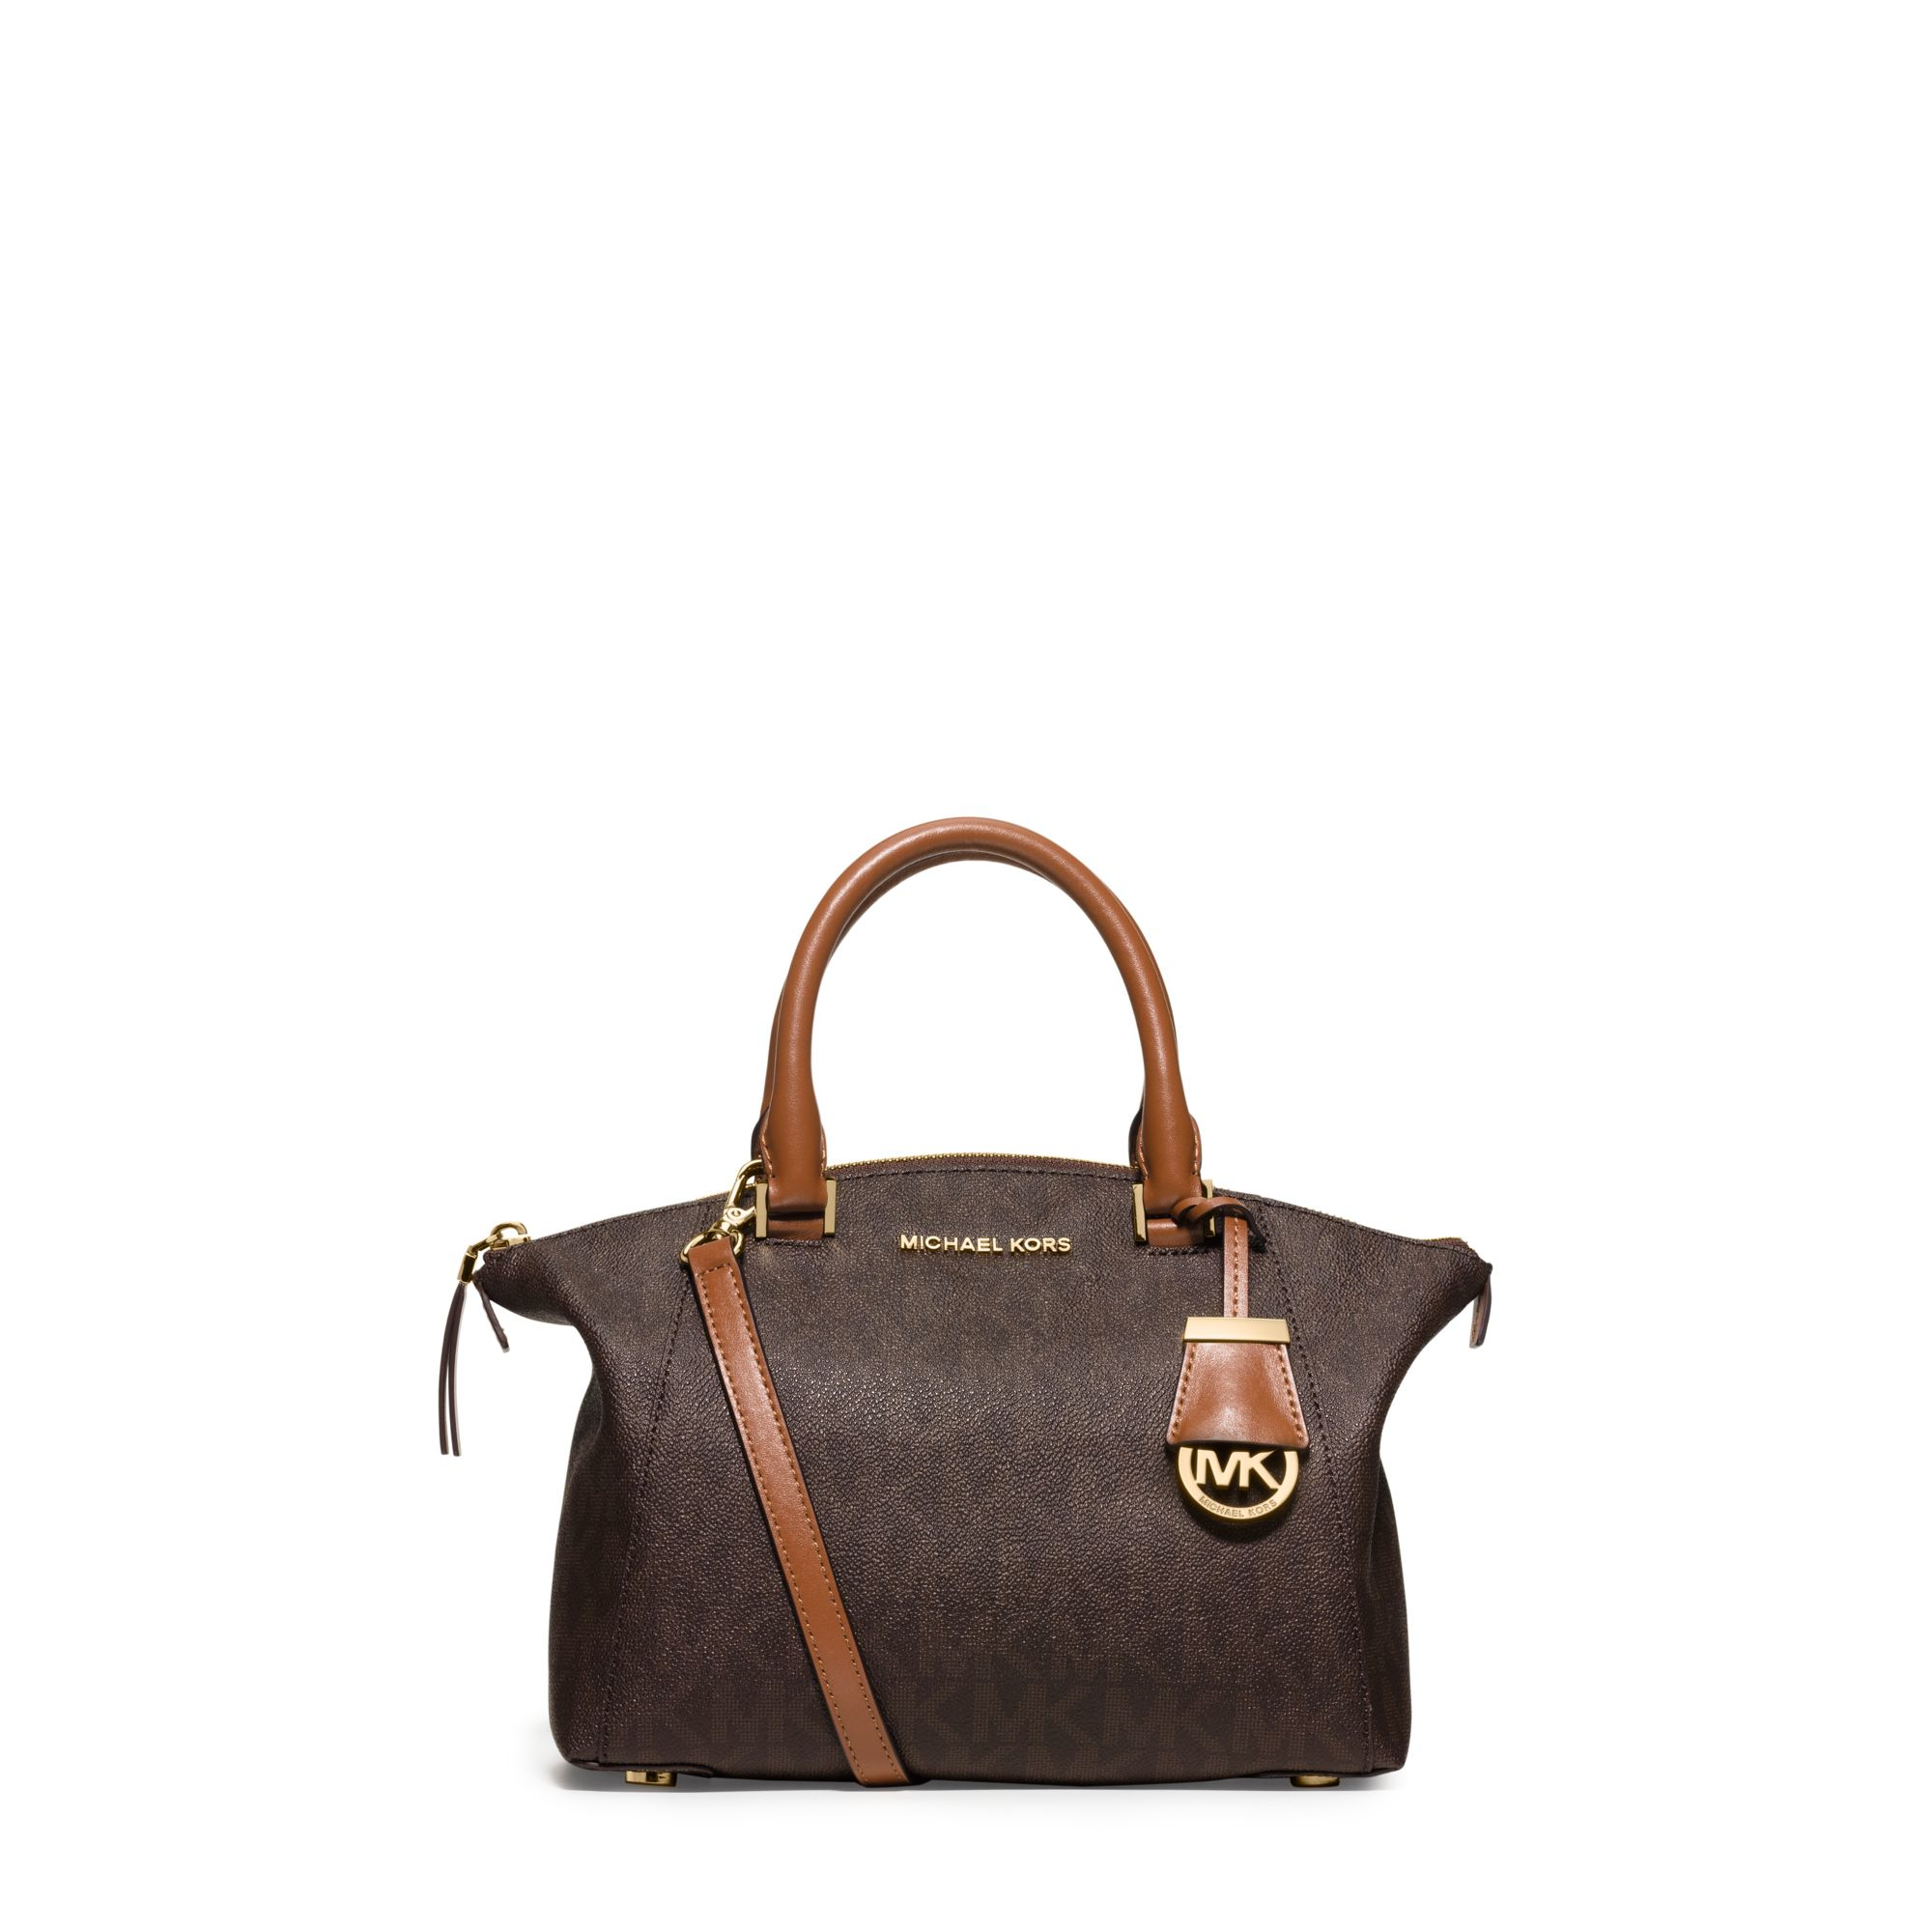 michel kors Online shopping from a great selection at clothing, shoes & jewelry store.